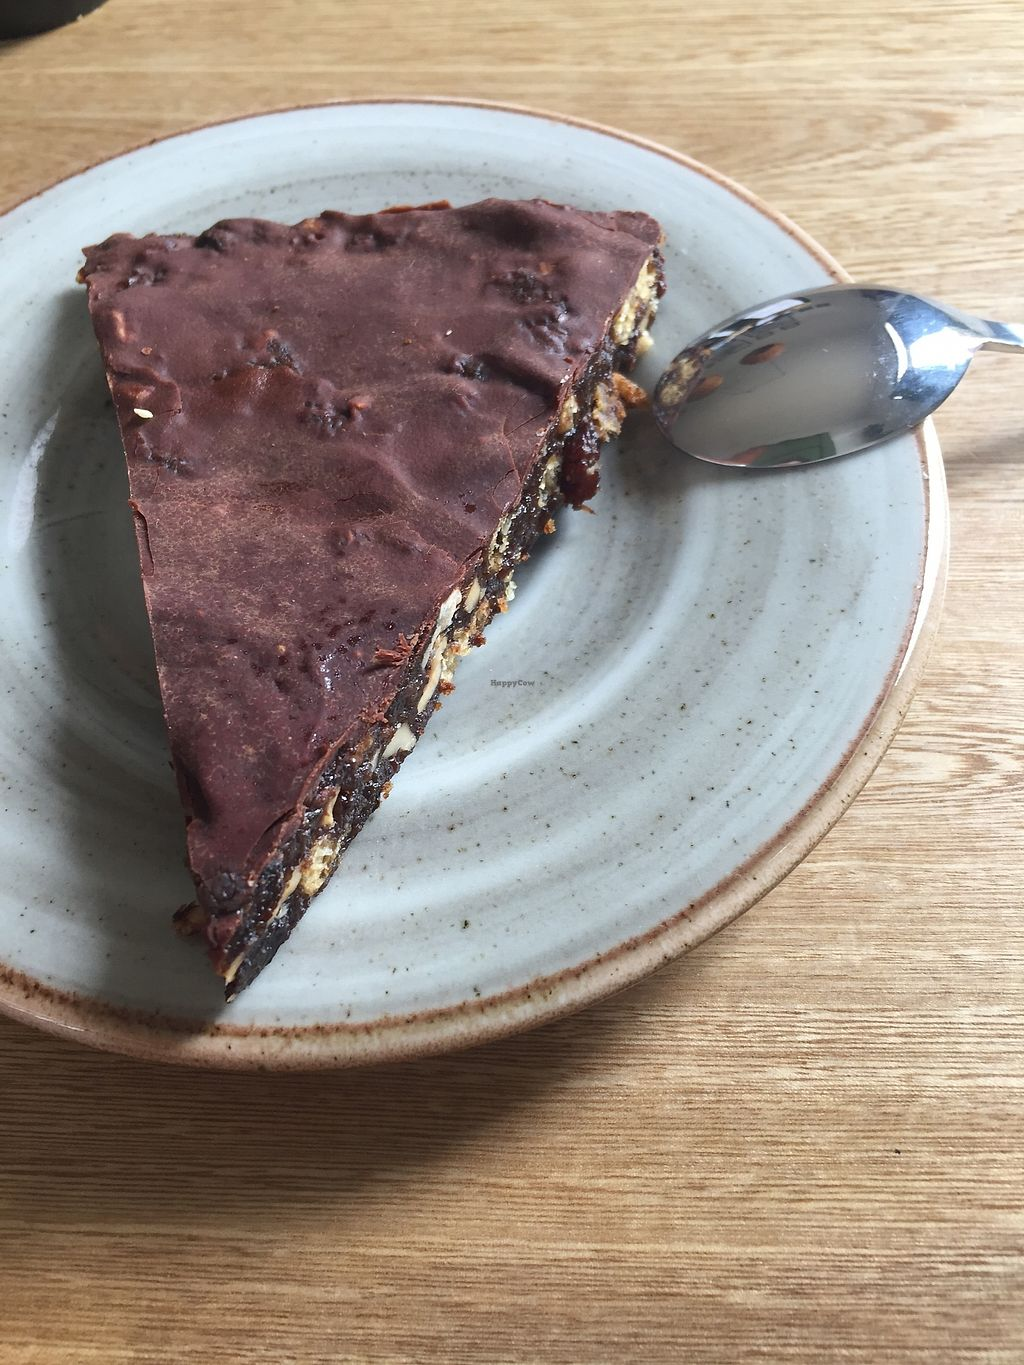 """Photo of Consulado Vegetal  by <a href=""""/members/profile/mariapaulaga"""">mariapaulaga</a> <br/>Quinoa chocolate cake <br/> August 11, 2017  - <a href='/contact/abuse/image/97049/291713'>Report</a>"""